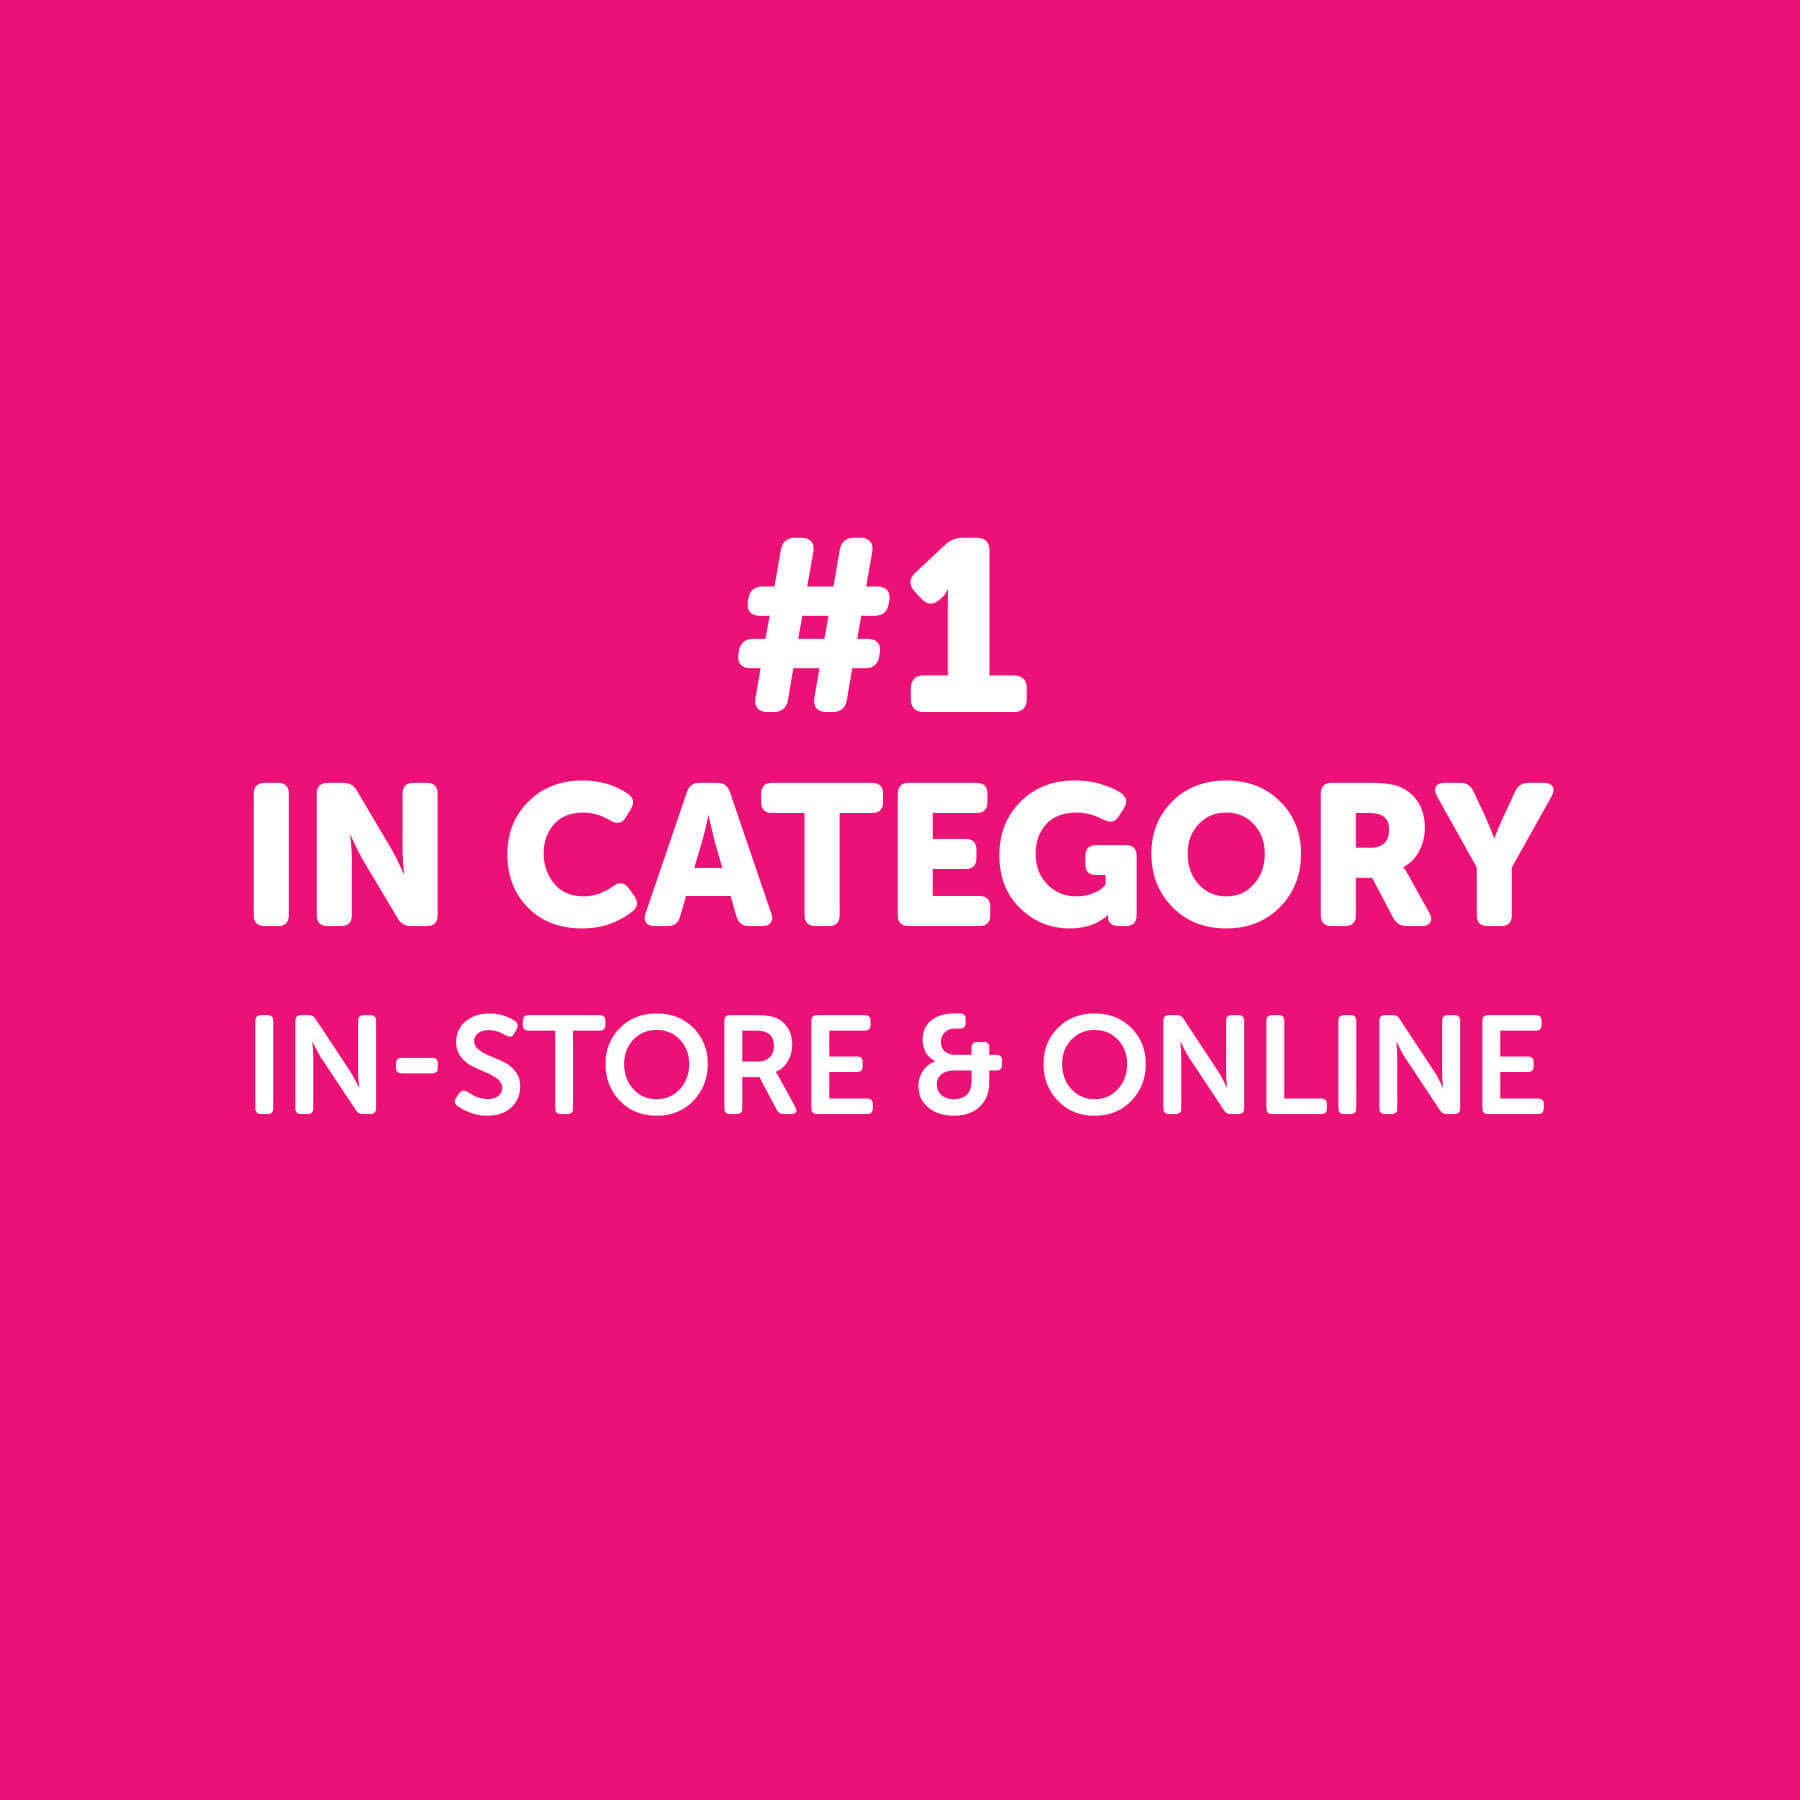 VCF #1 In Category In-Store & Online